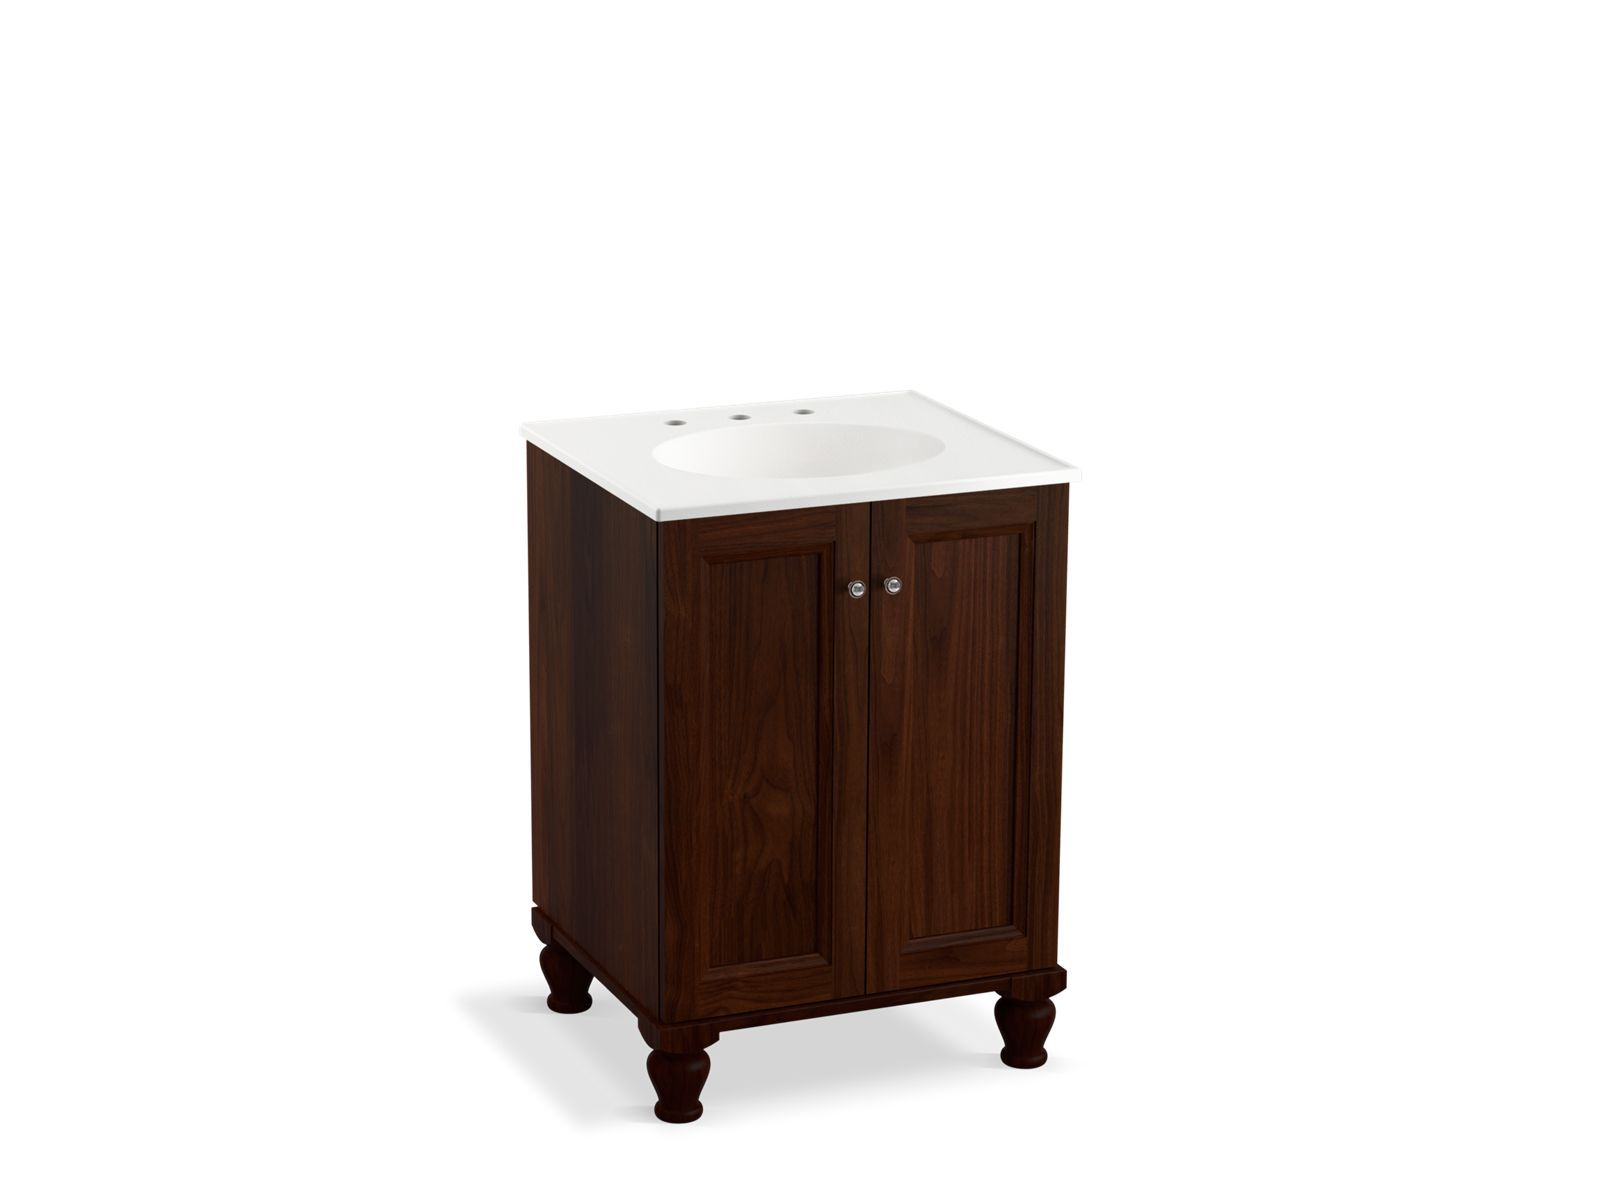 24 Inch Bathroom Vanity With Legs k-99513-lg | damask 24-inch vanity with legs, 2 doors | kohler